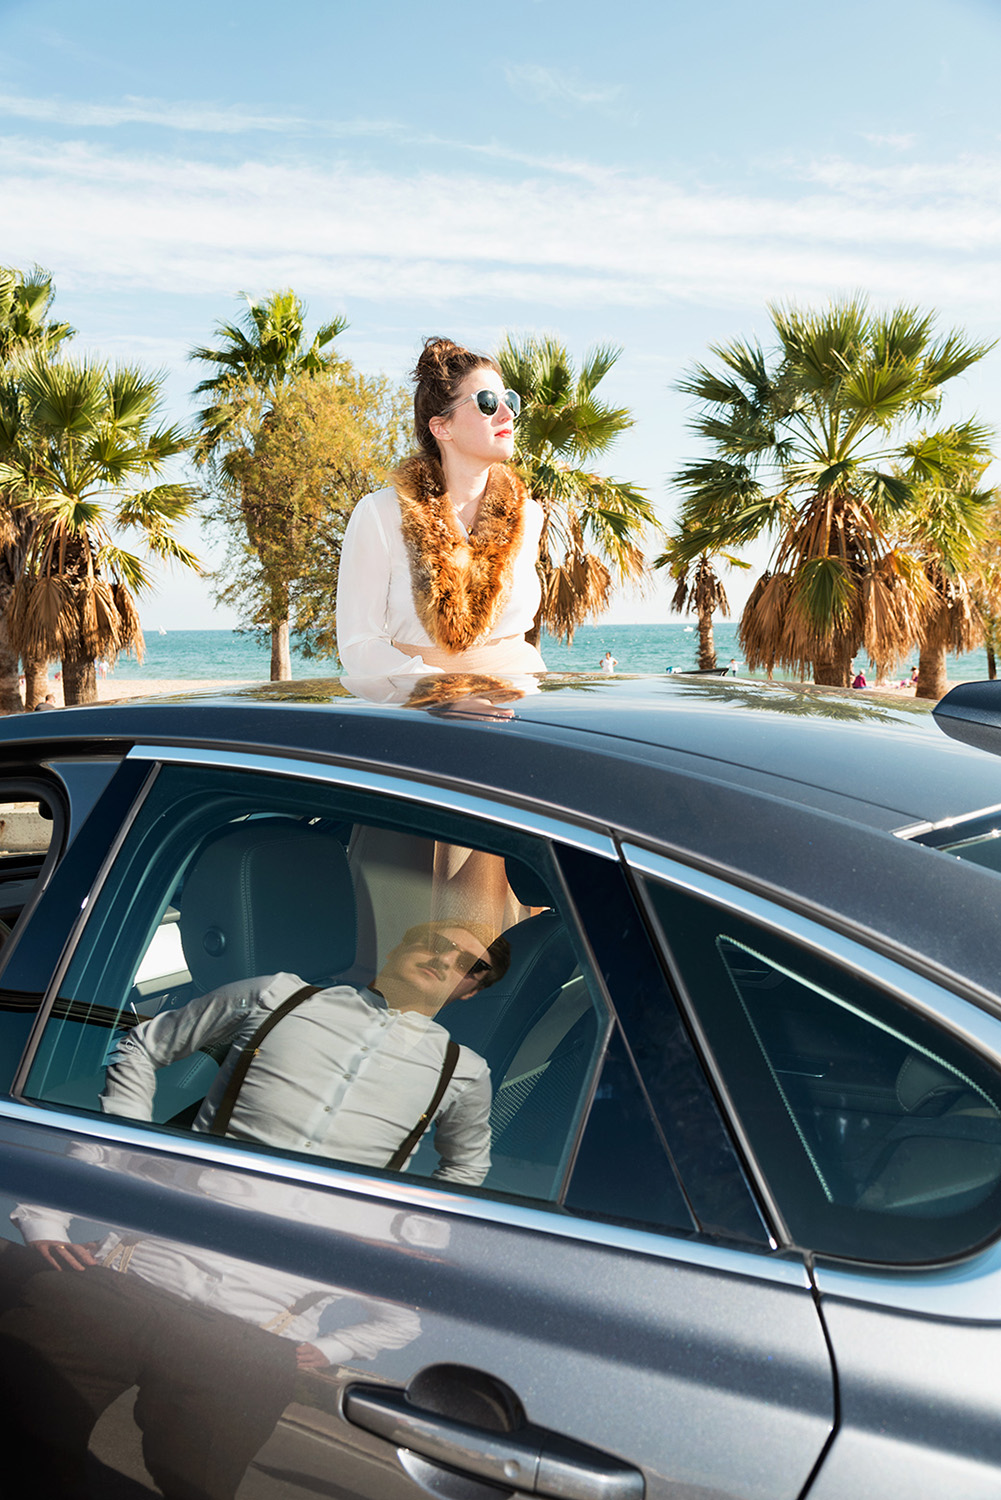 photo, photos, photography, photographer, photographers, car, cars, man, men, woman, women, palm, tree, trees, ocean, beach, reflection, sunglasses, lei